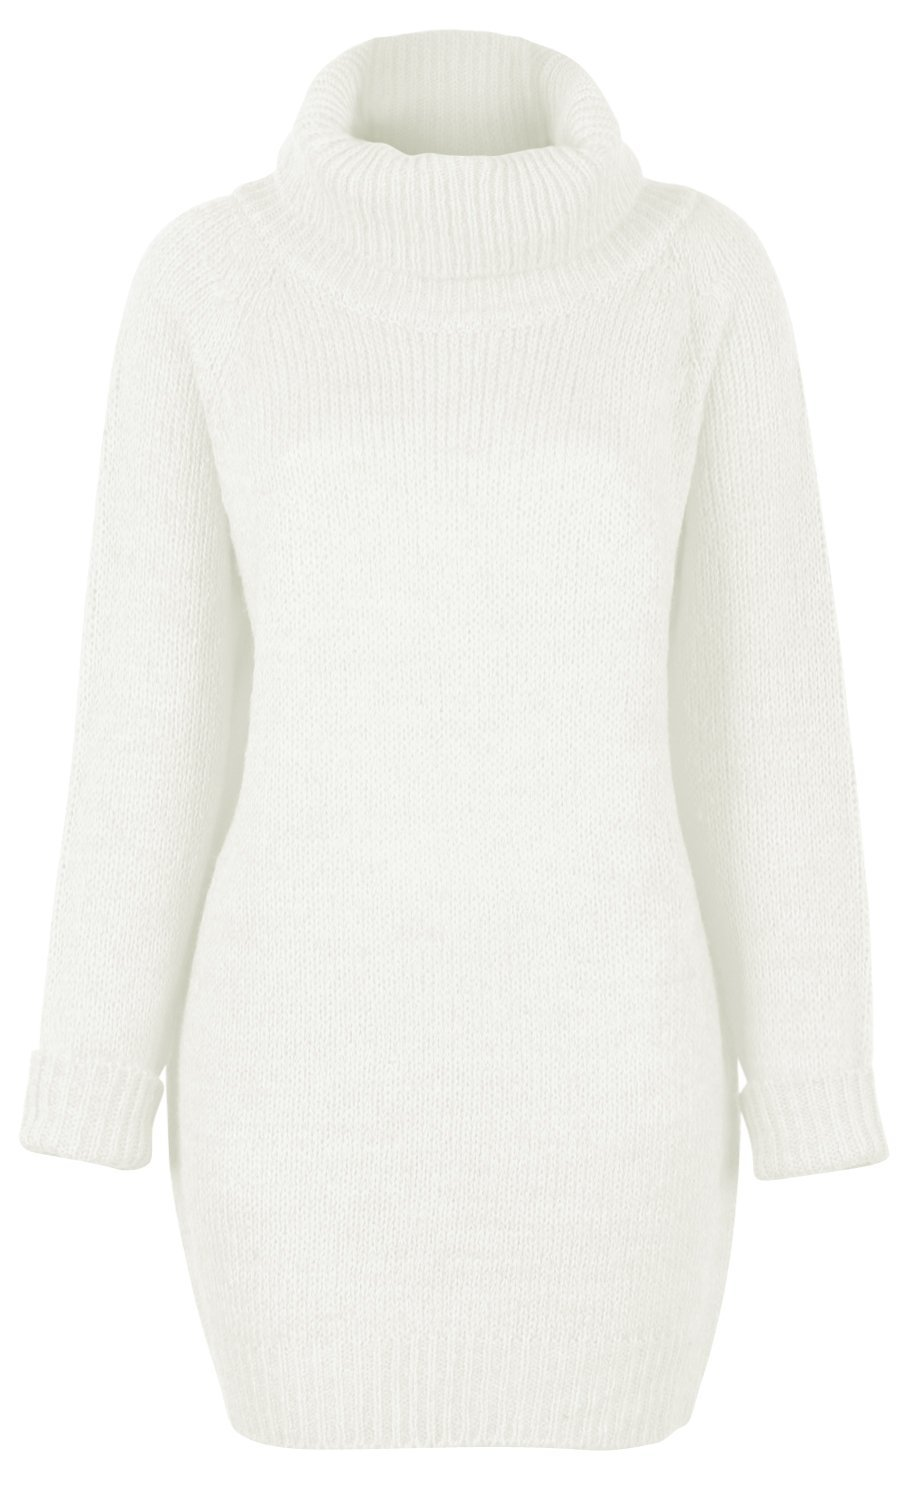 Women's Ribbed Knit Long Sleeve Loose Fit Turtleneck Tunic Sweater ...